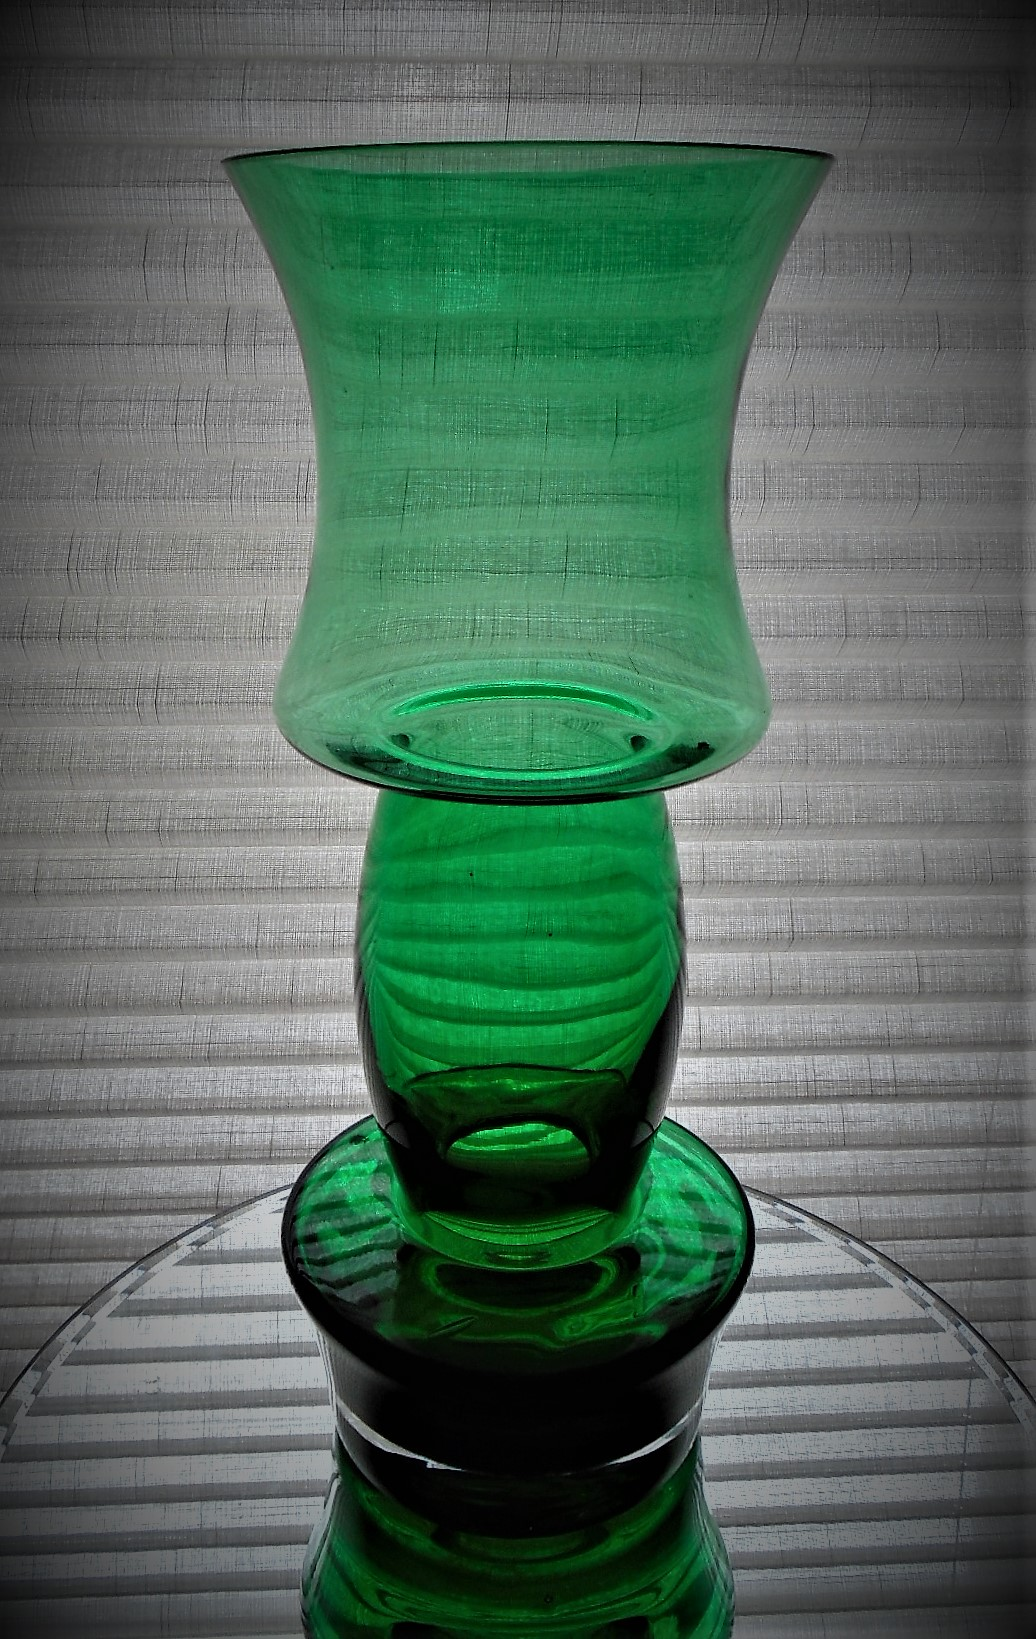 Finnish 1970s RIIHIMAKI  LASI OY  green glass vase by TAMARA ALADIN. It stands 27.9cms in height and has a rim